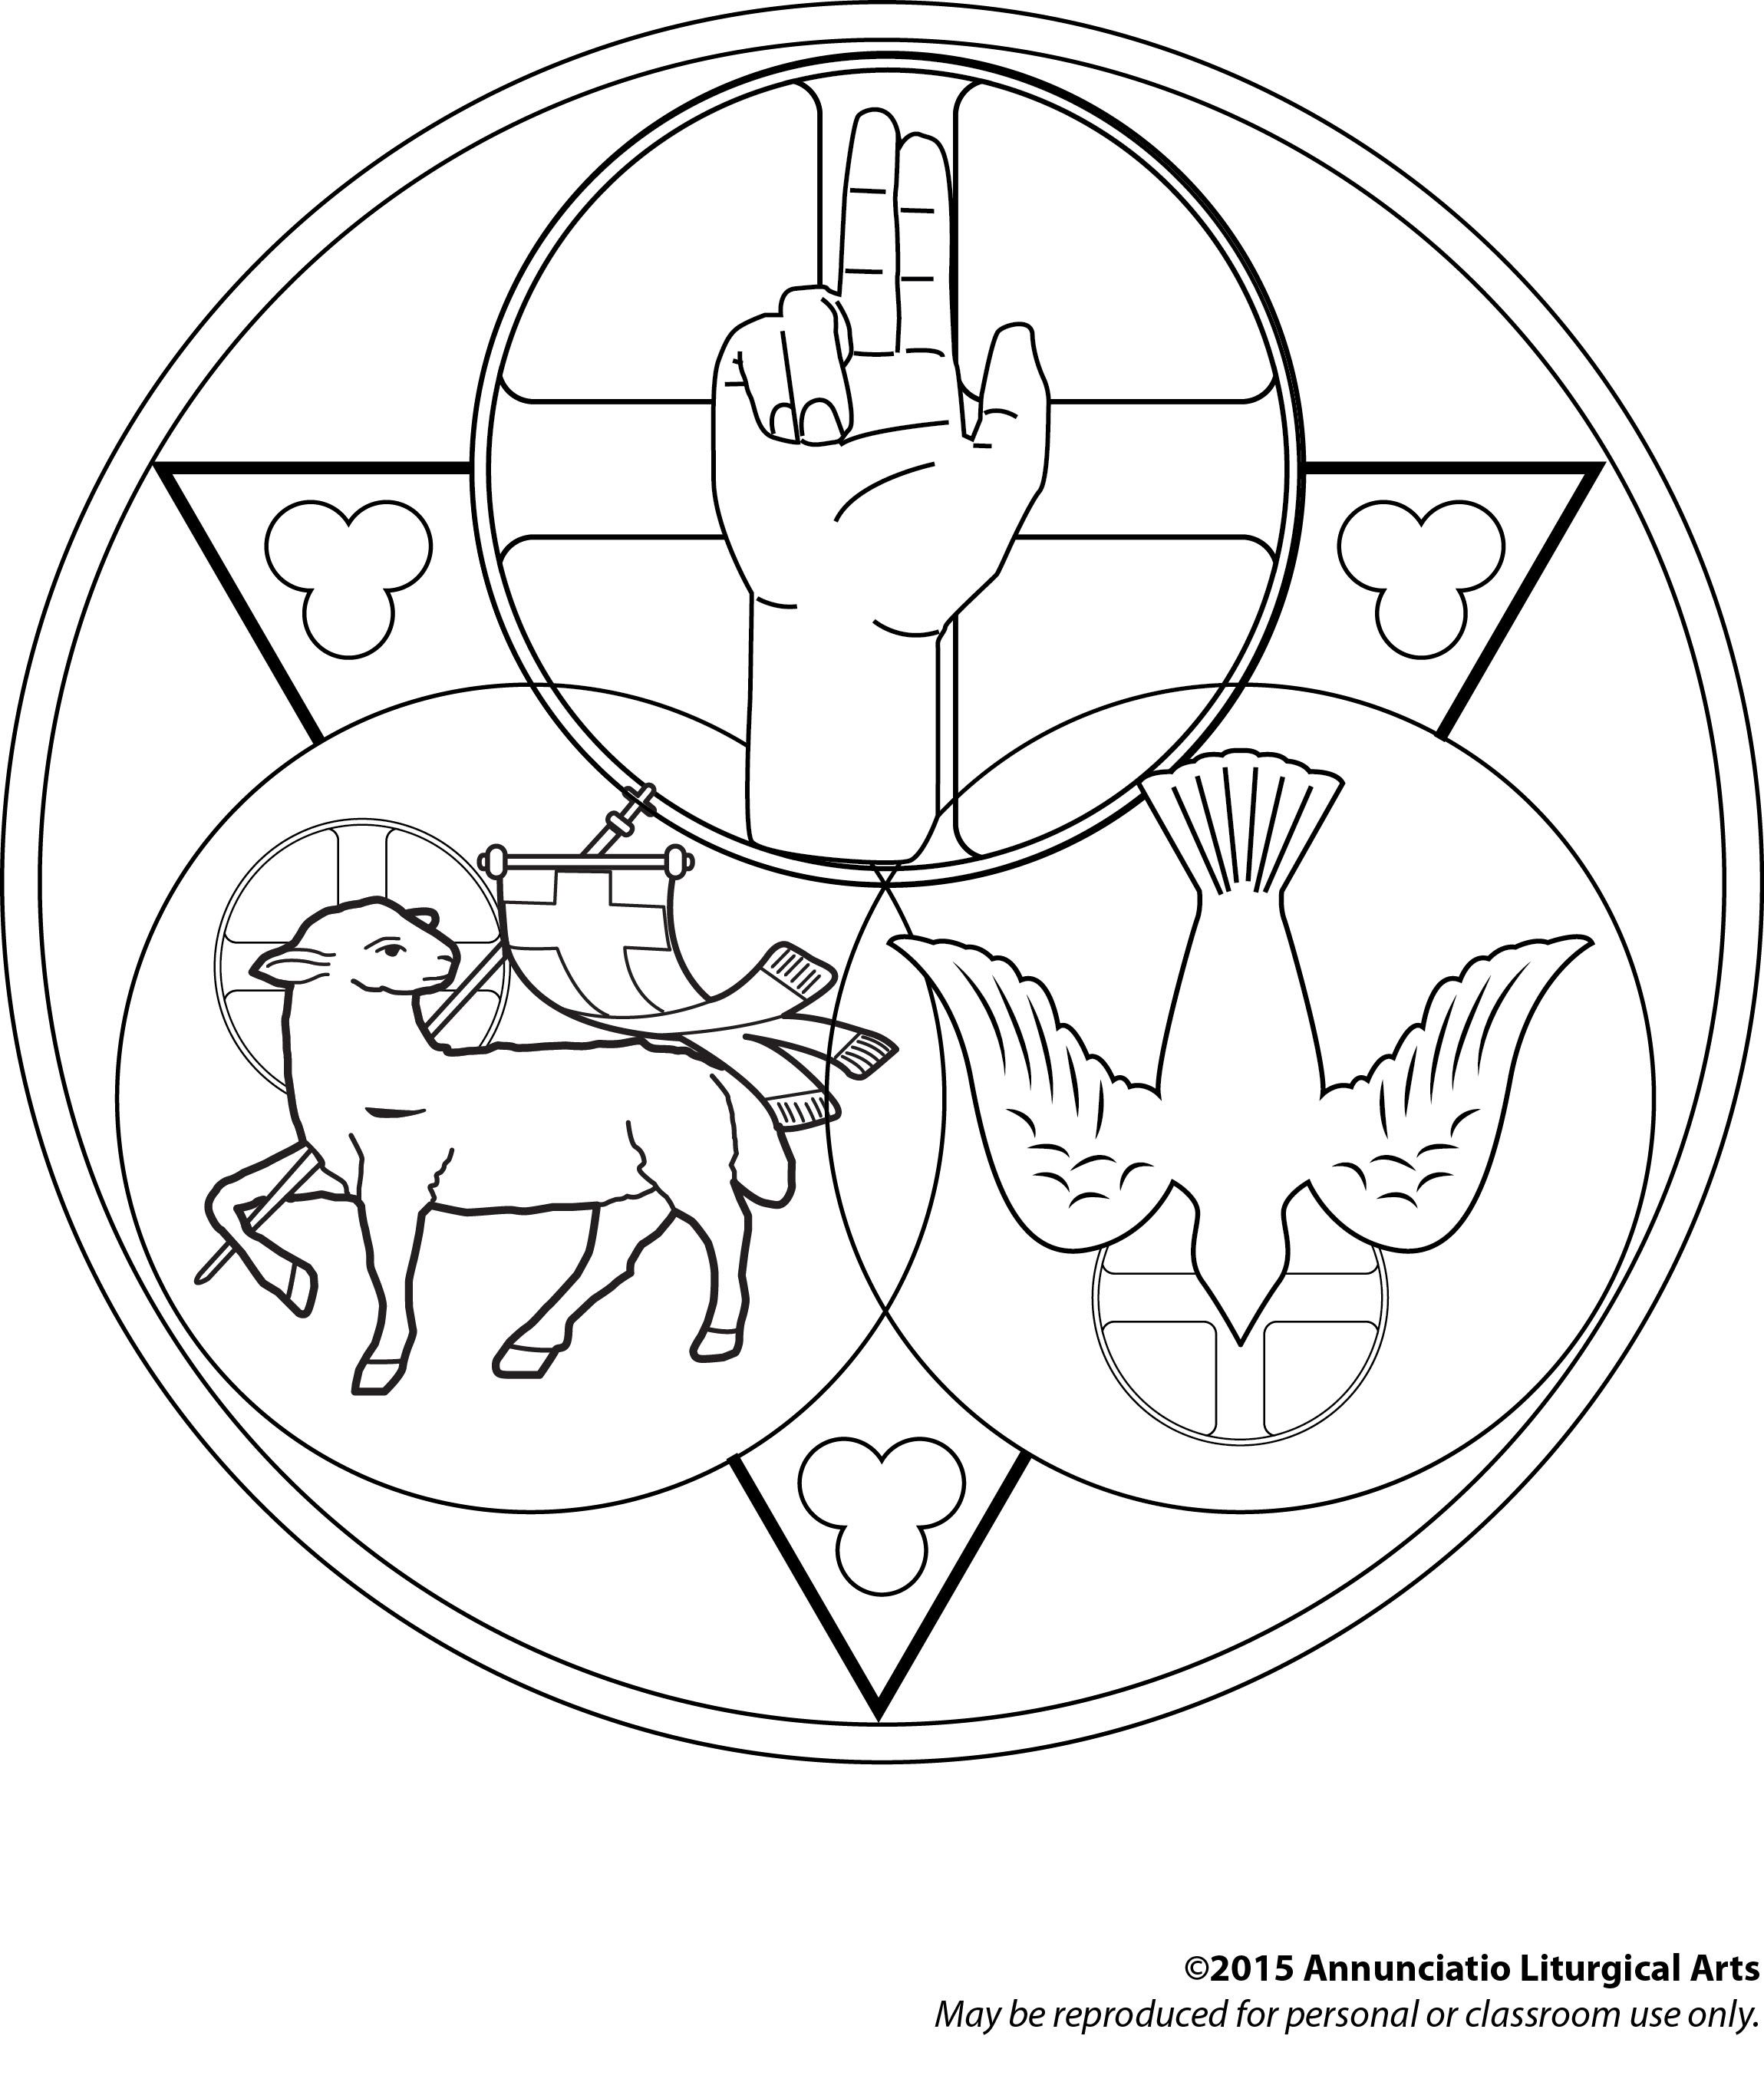 Holy Trinity coloring page. Find more art at https://www